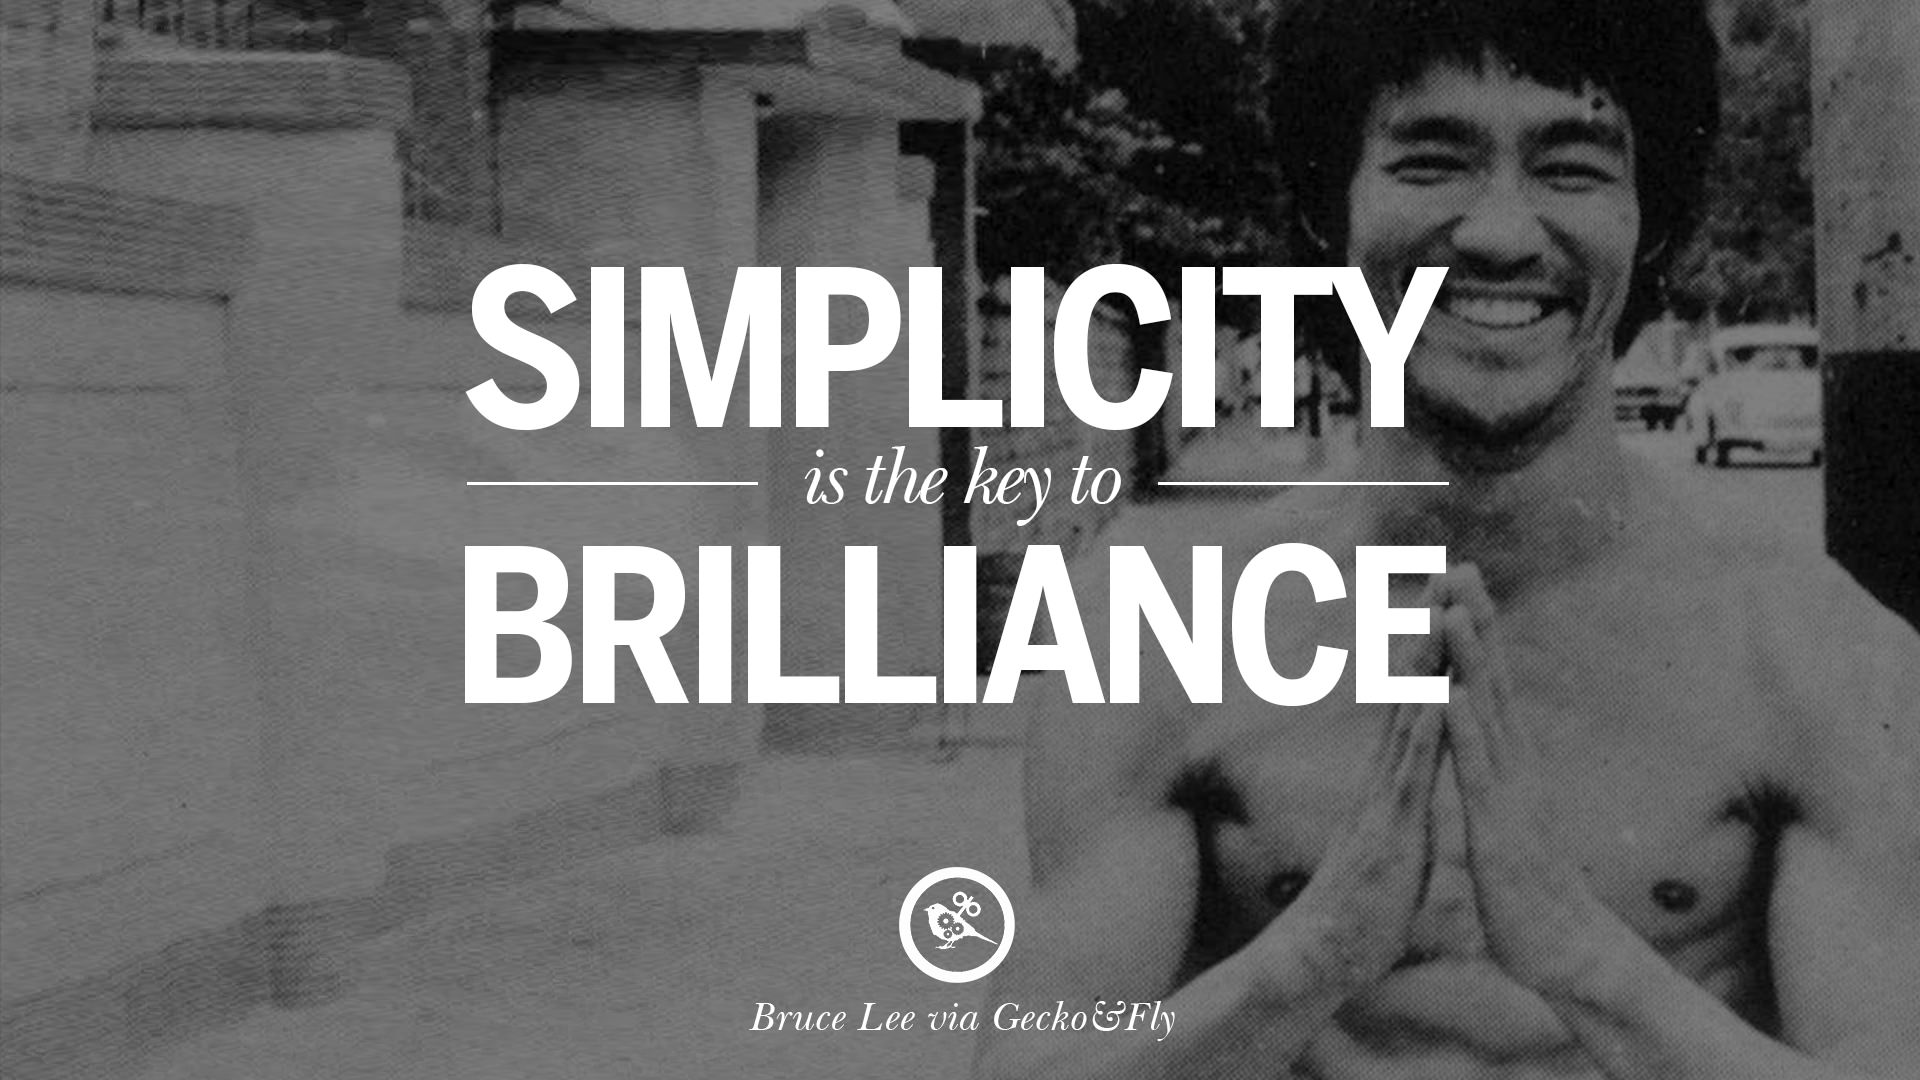 Inspirational Quotes 25 Inspirational Quotes From Bruce Lee's Martial Arts Movie